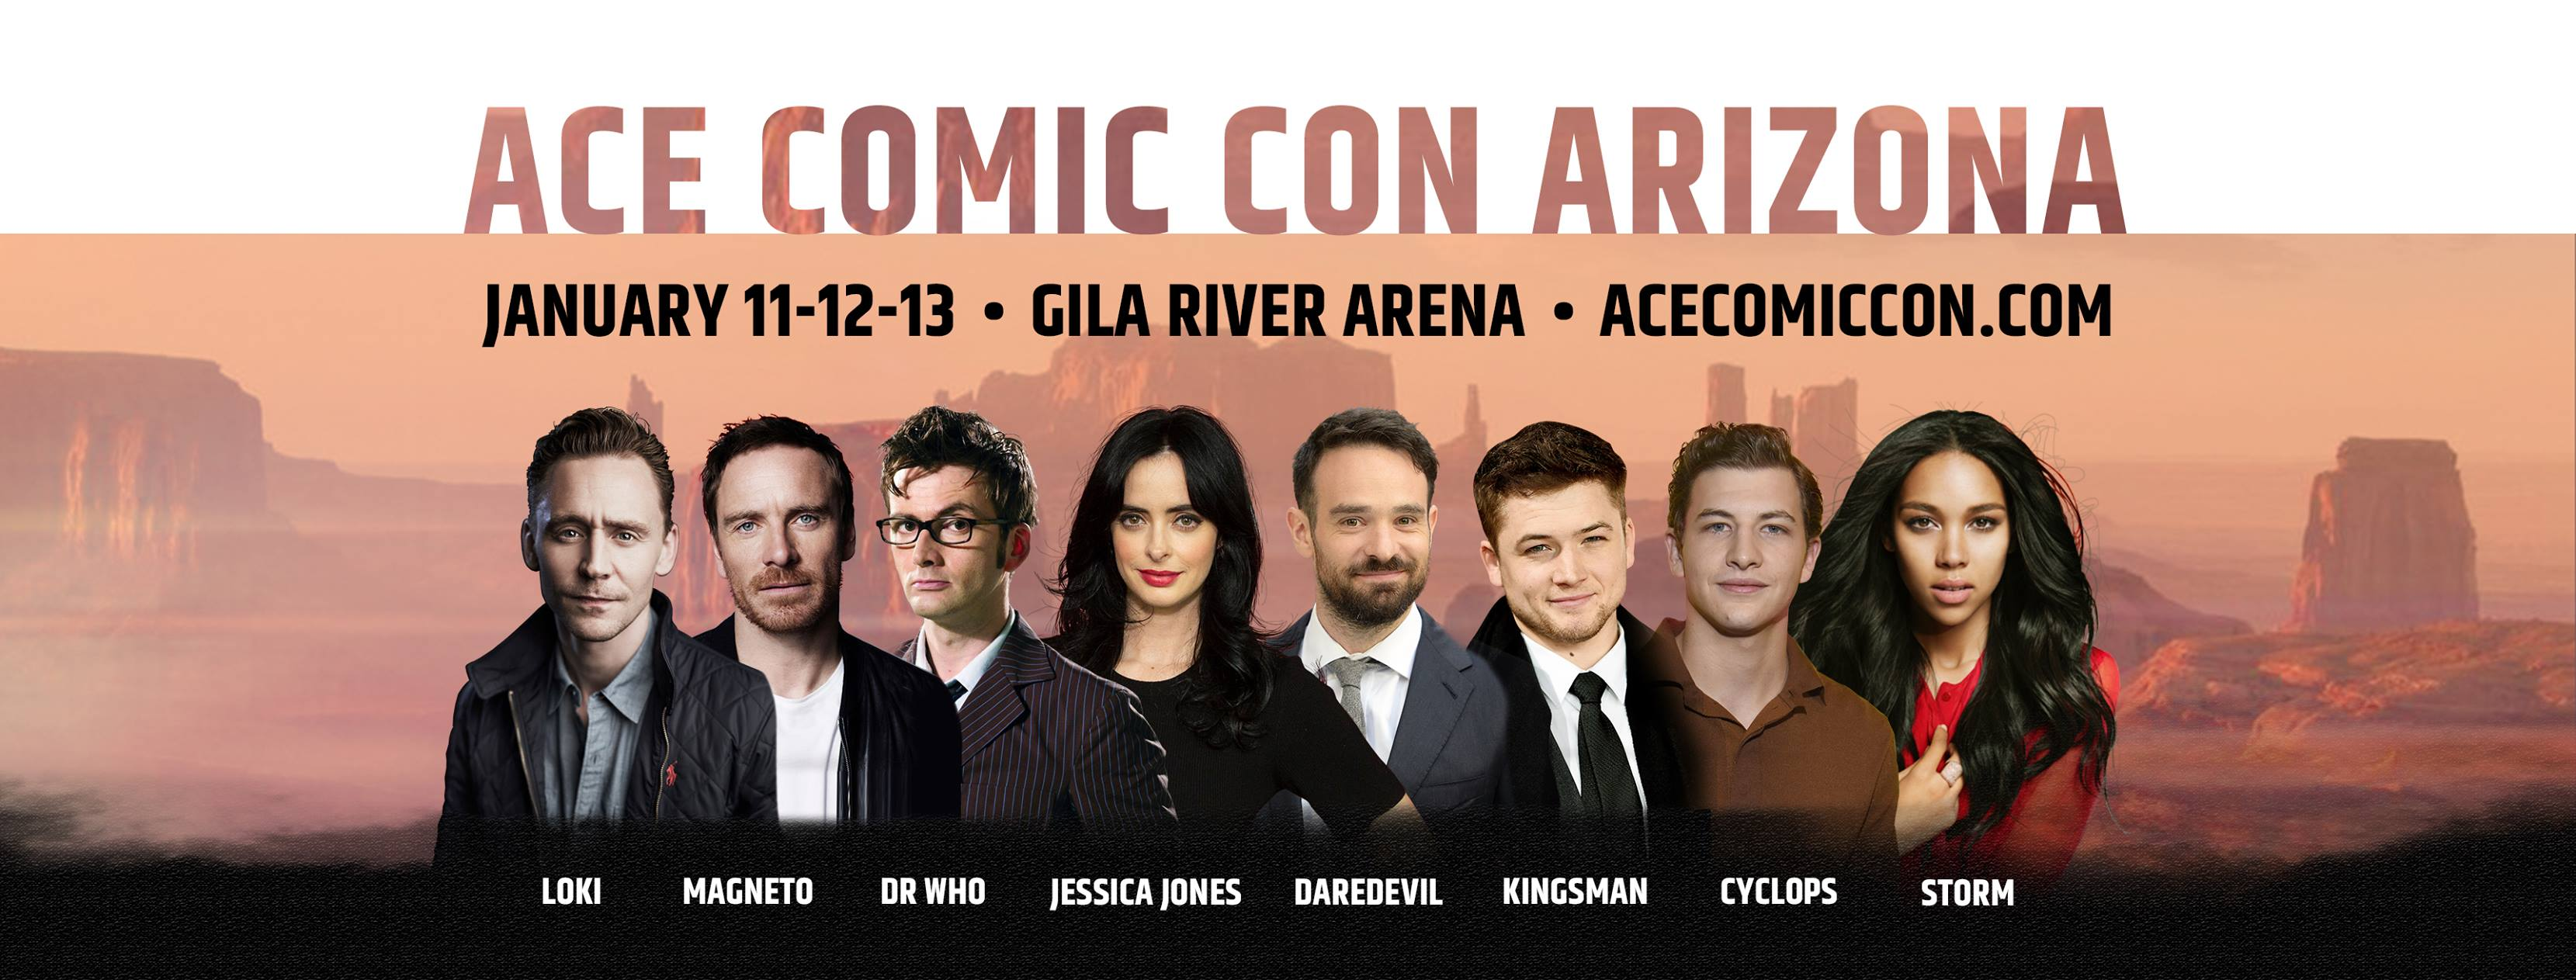 Ace Comic Con Arizona 2019